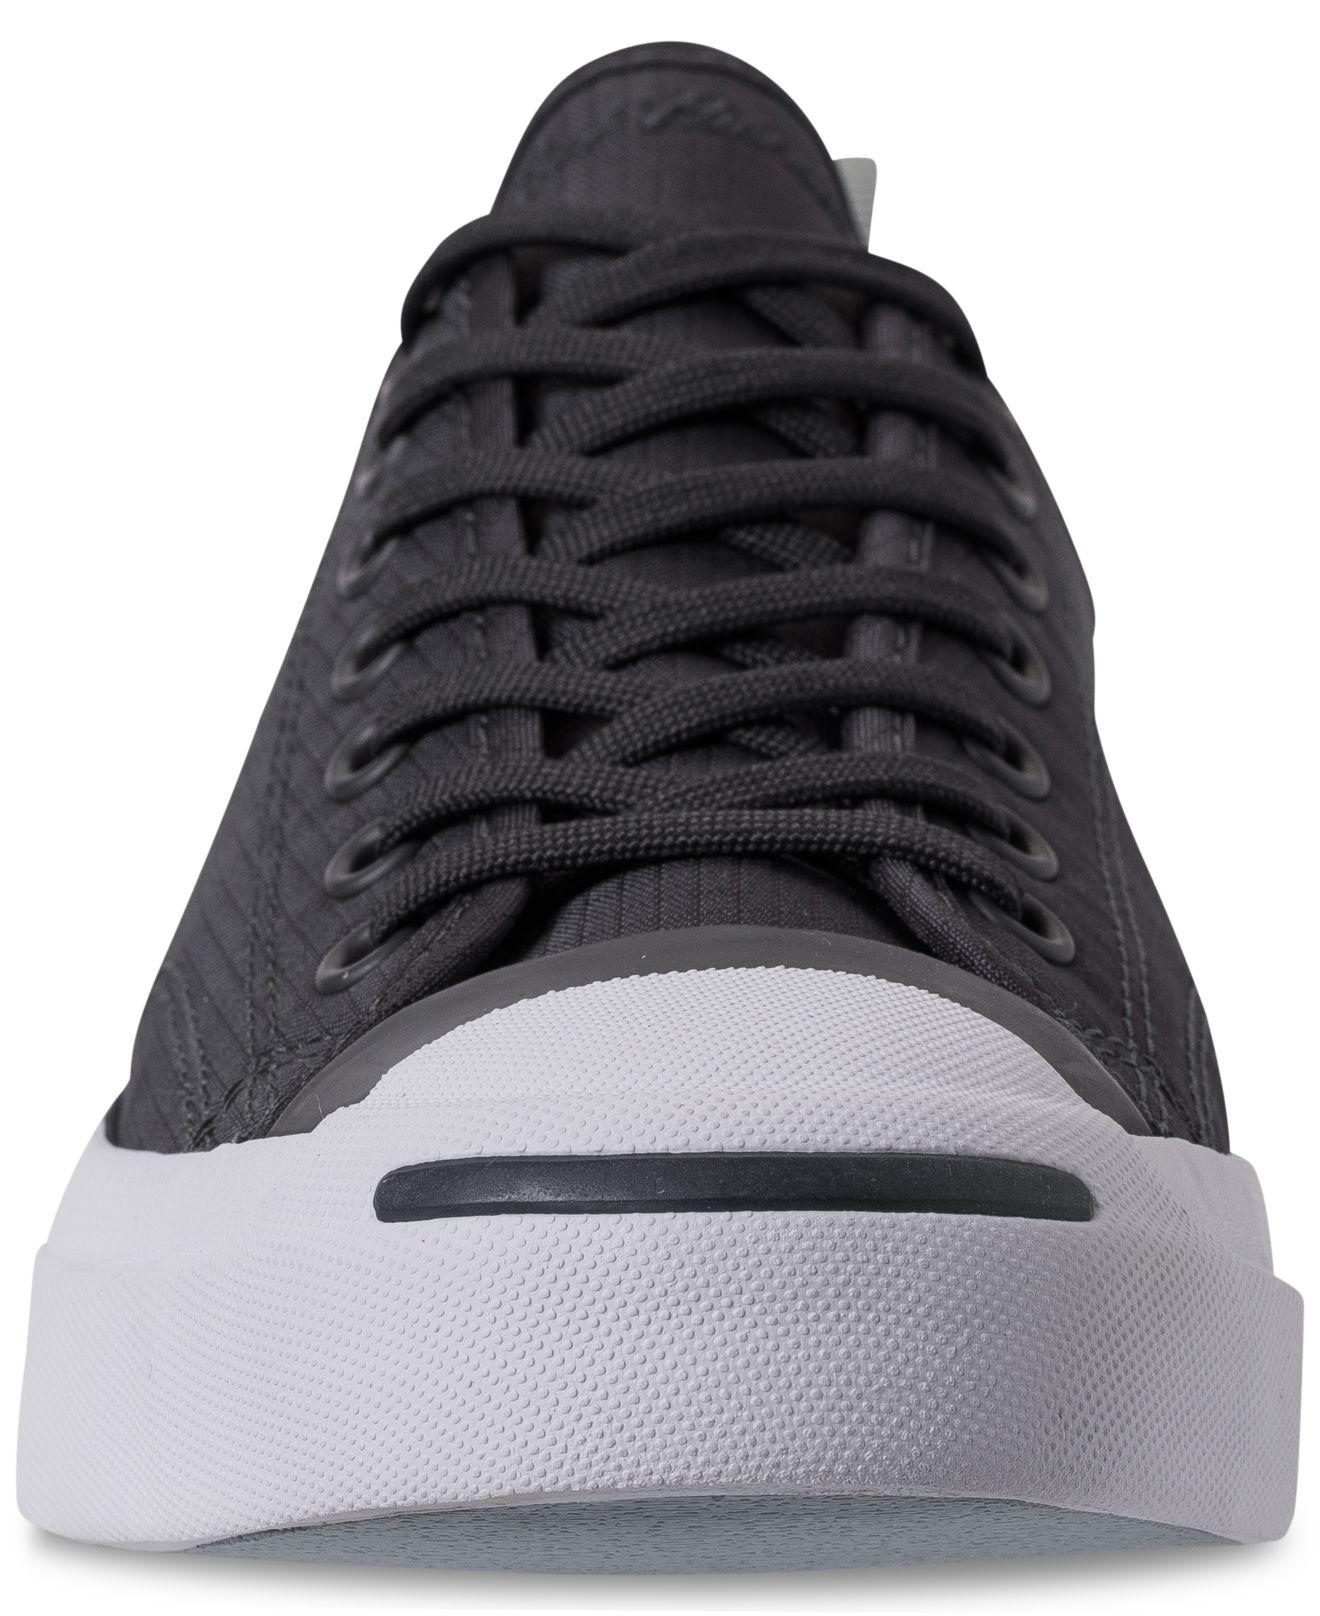 5c180393dd88 Lyst - Converse Jack Purcell Low Top Woven Textile Casual Sneakers ...